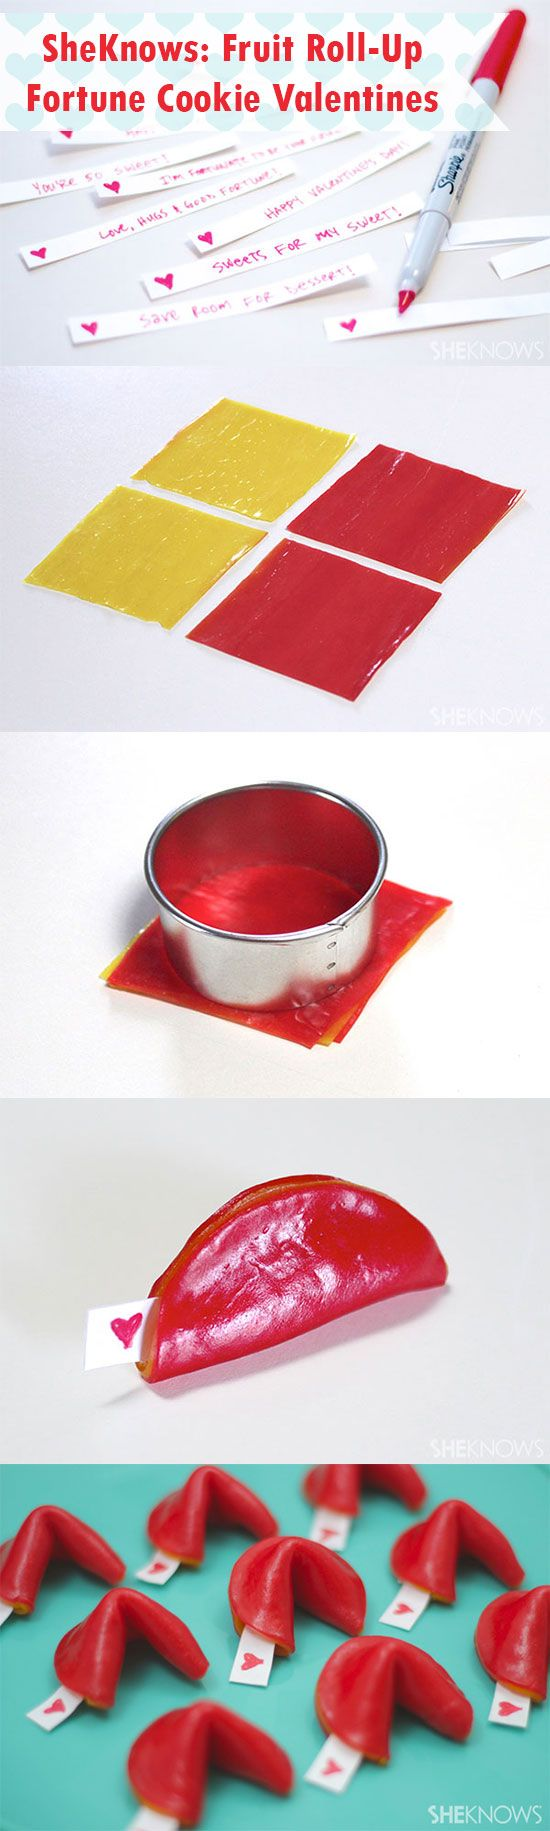 SheKnows: Fruit Roll-Up Fortune Cookie Valentines  {Step-By-Step} - Click for ALL of the Details >>>>